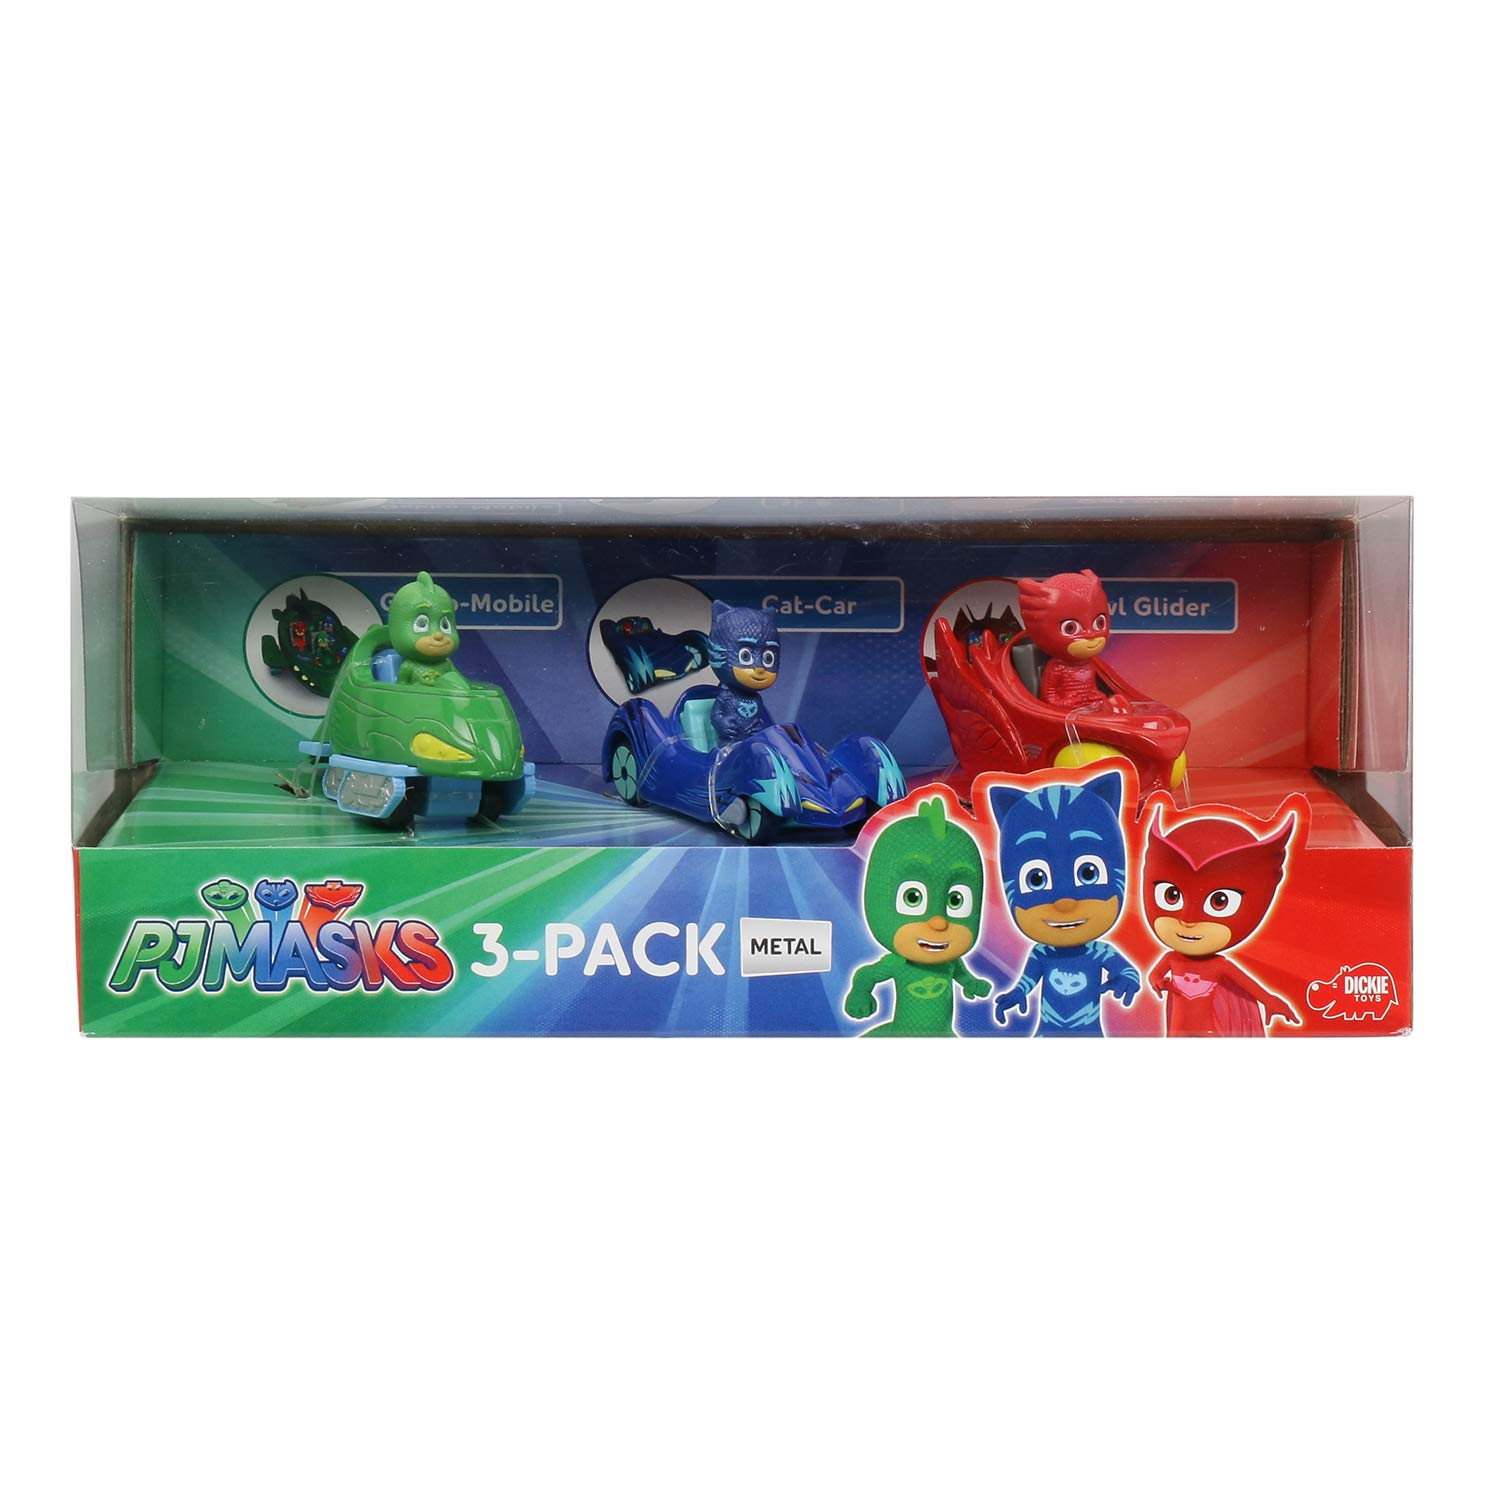 Top 10 Best PJ Masks Toys For Kids (2020 Reviews & Buying Guide) 10